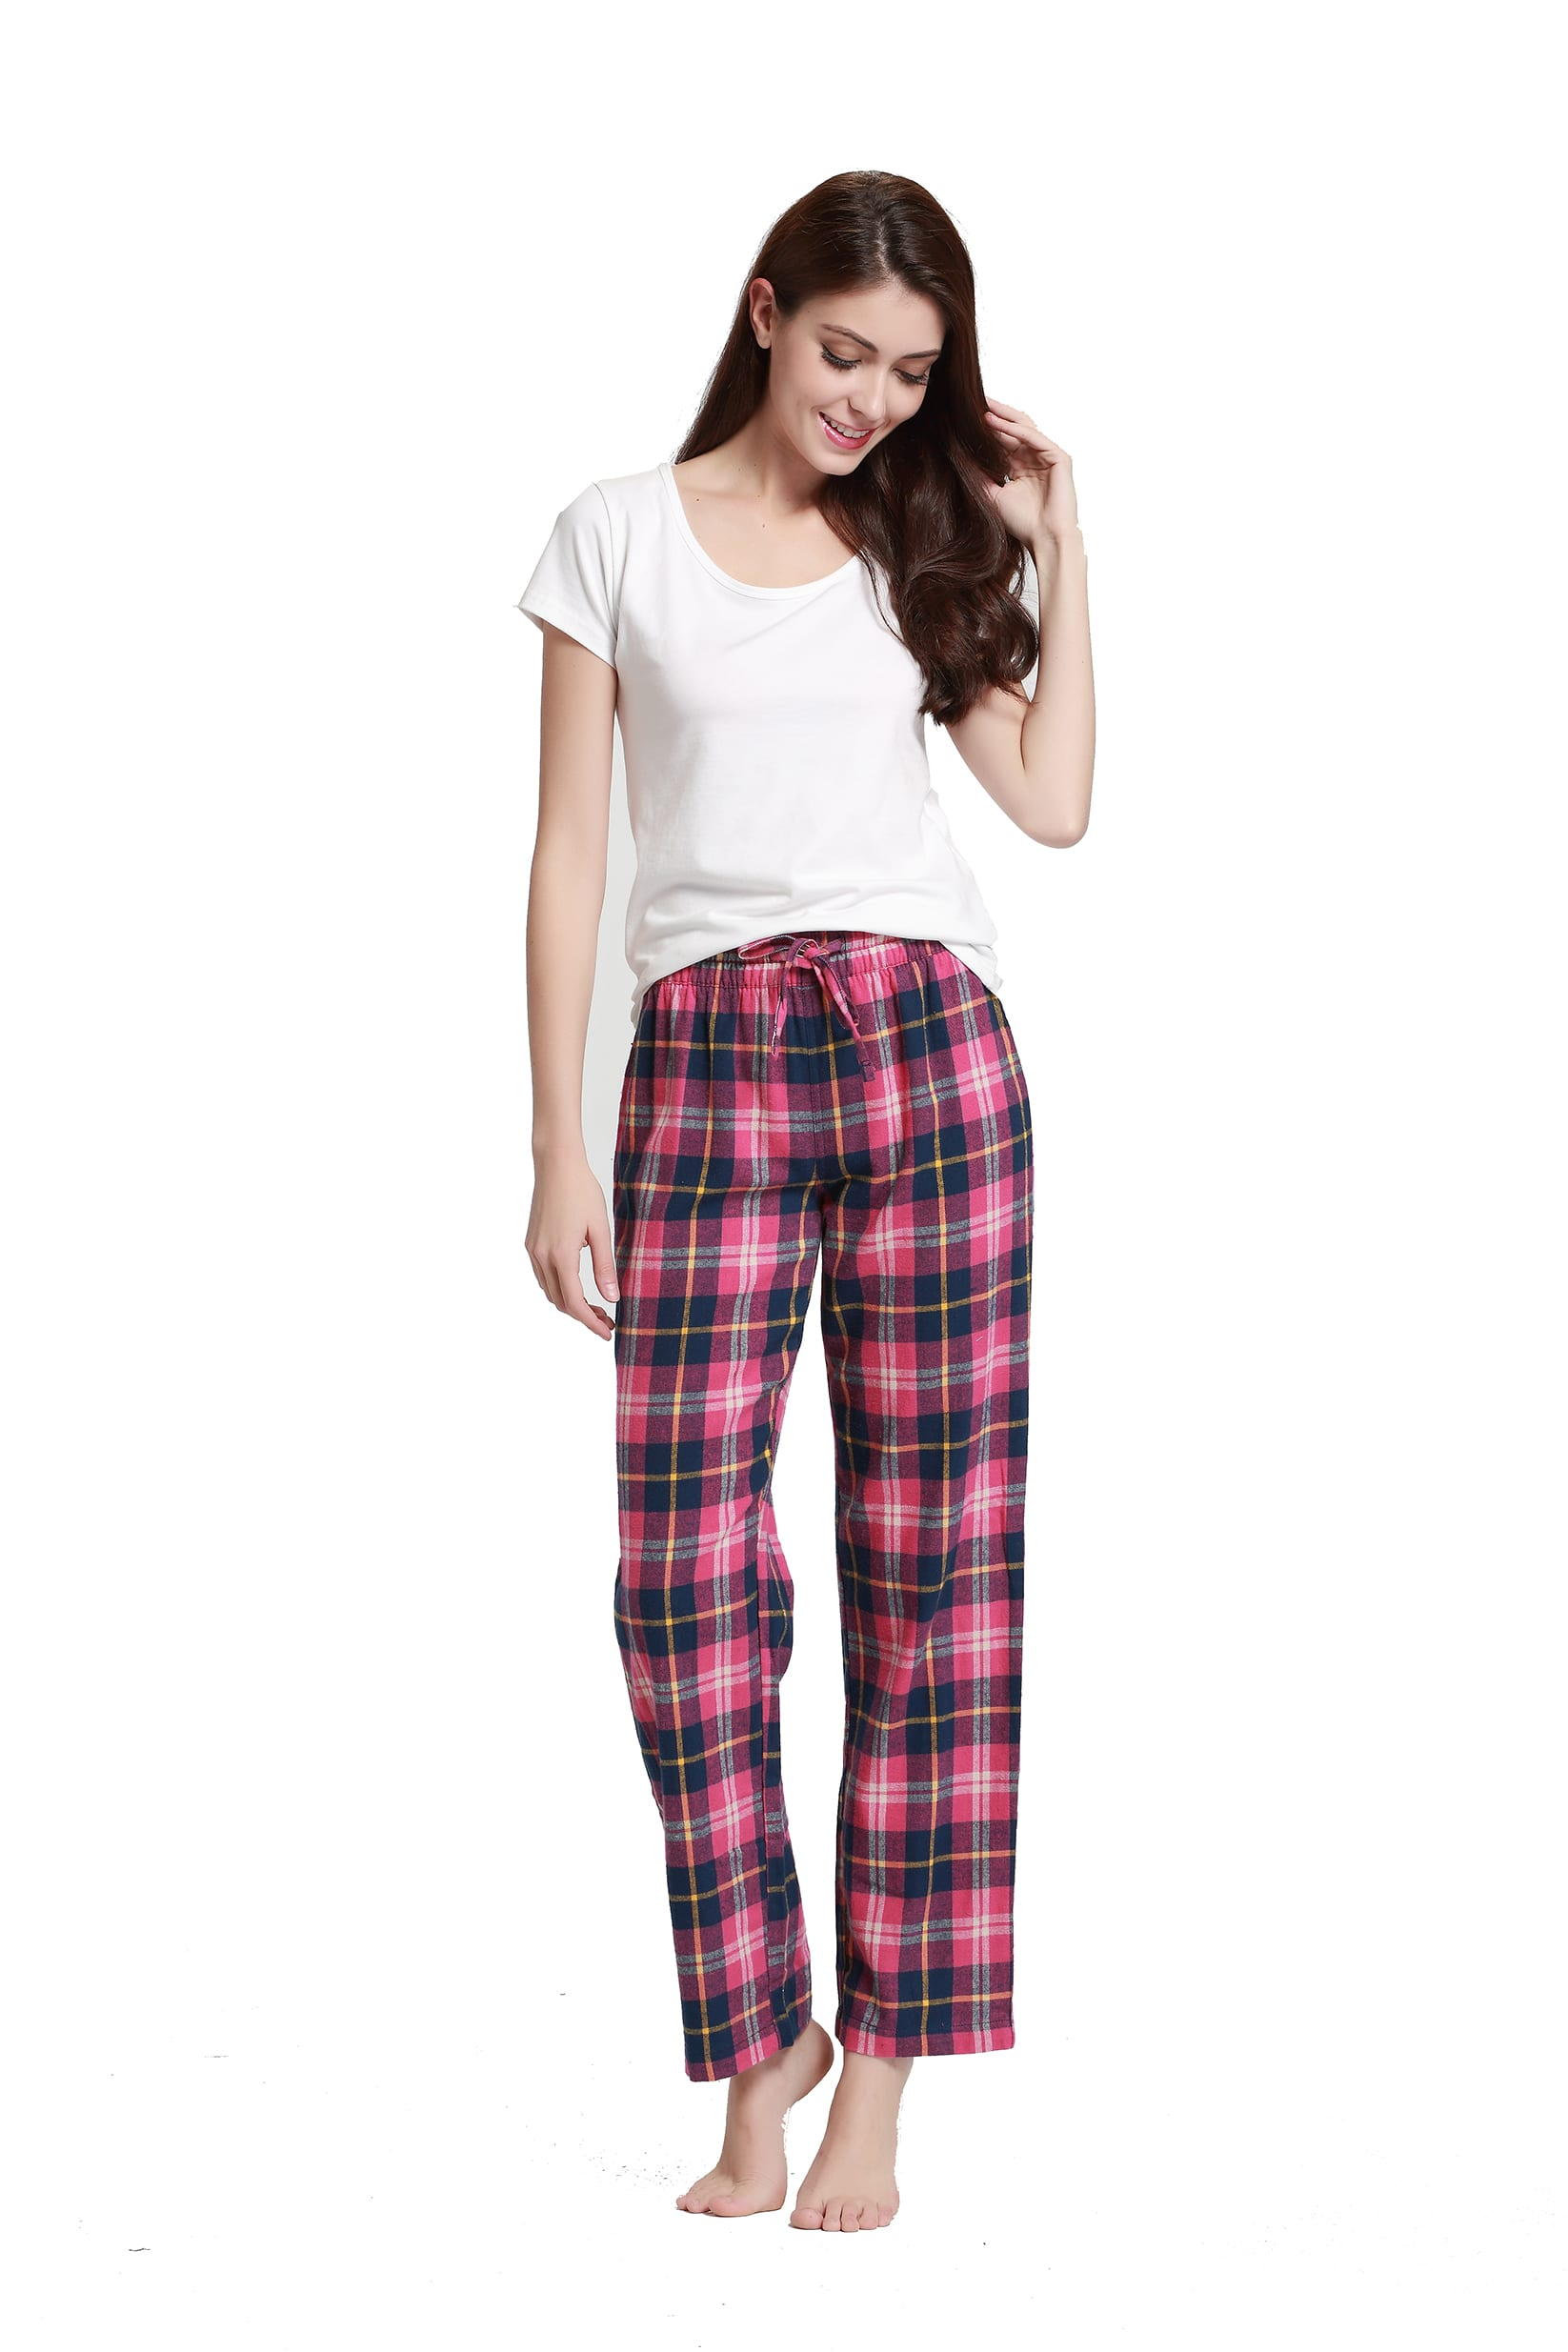 CYZ Women's 100% Cotton Flannel Pajama Pants 40% Off from $7.79